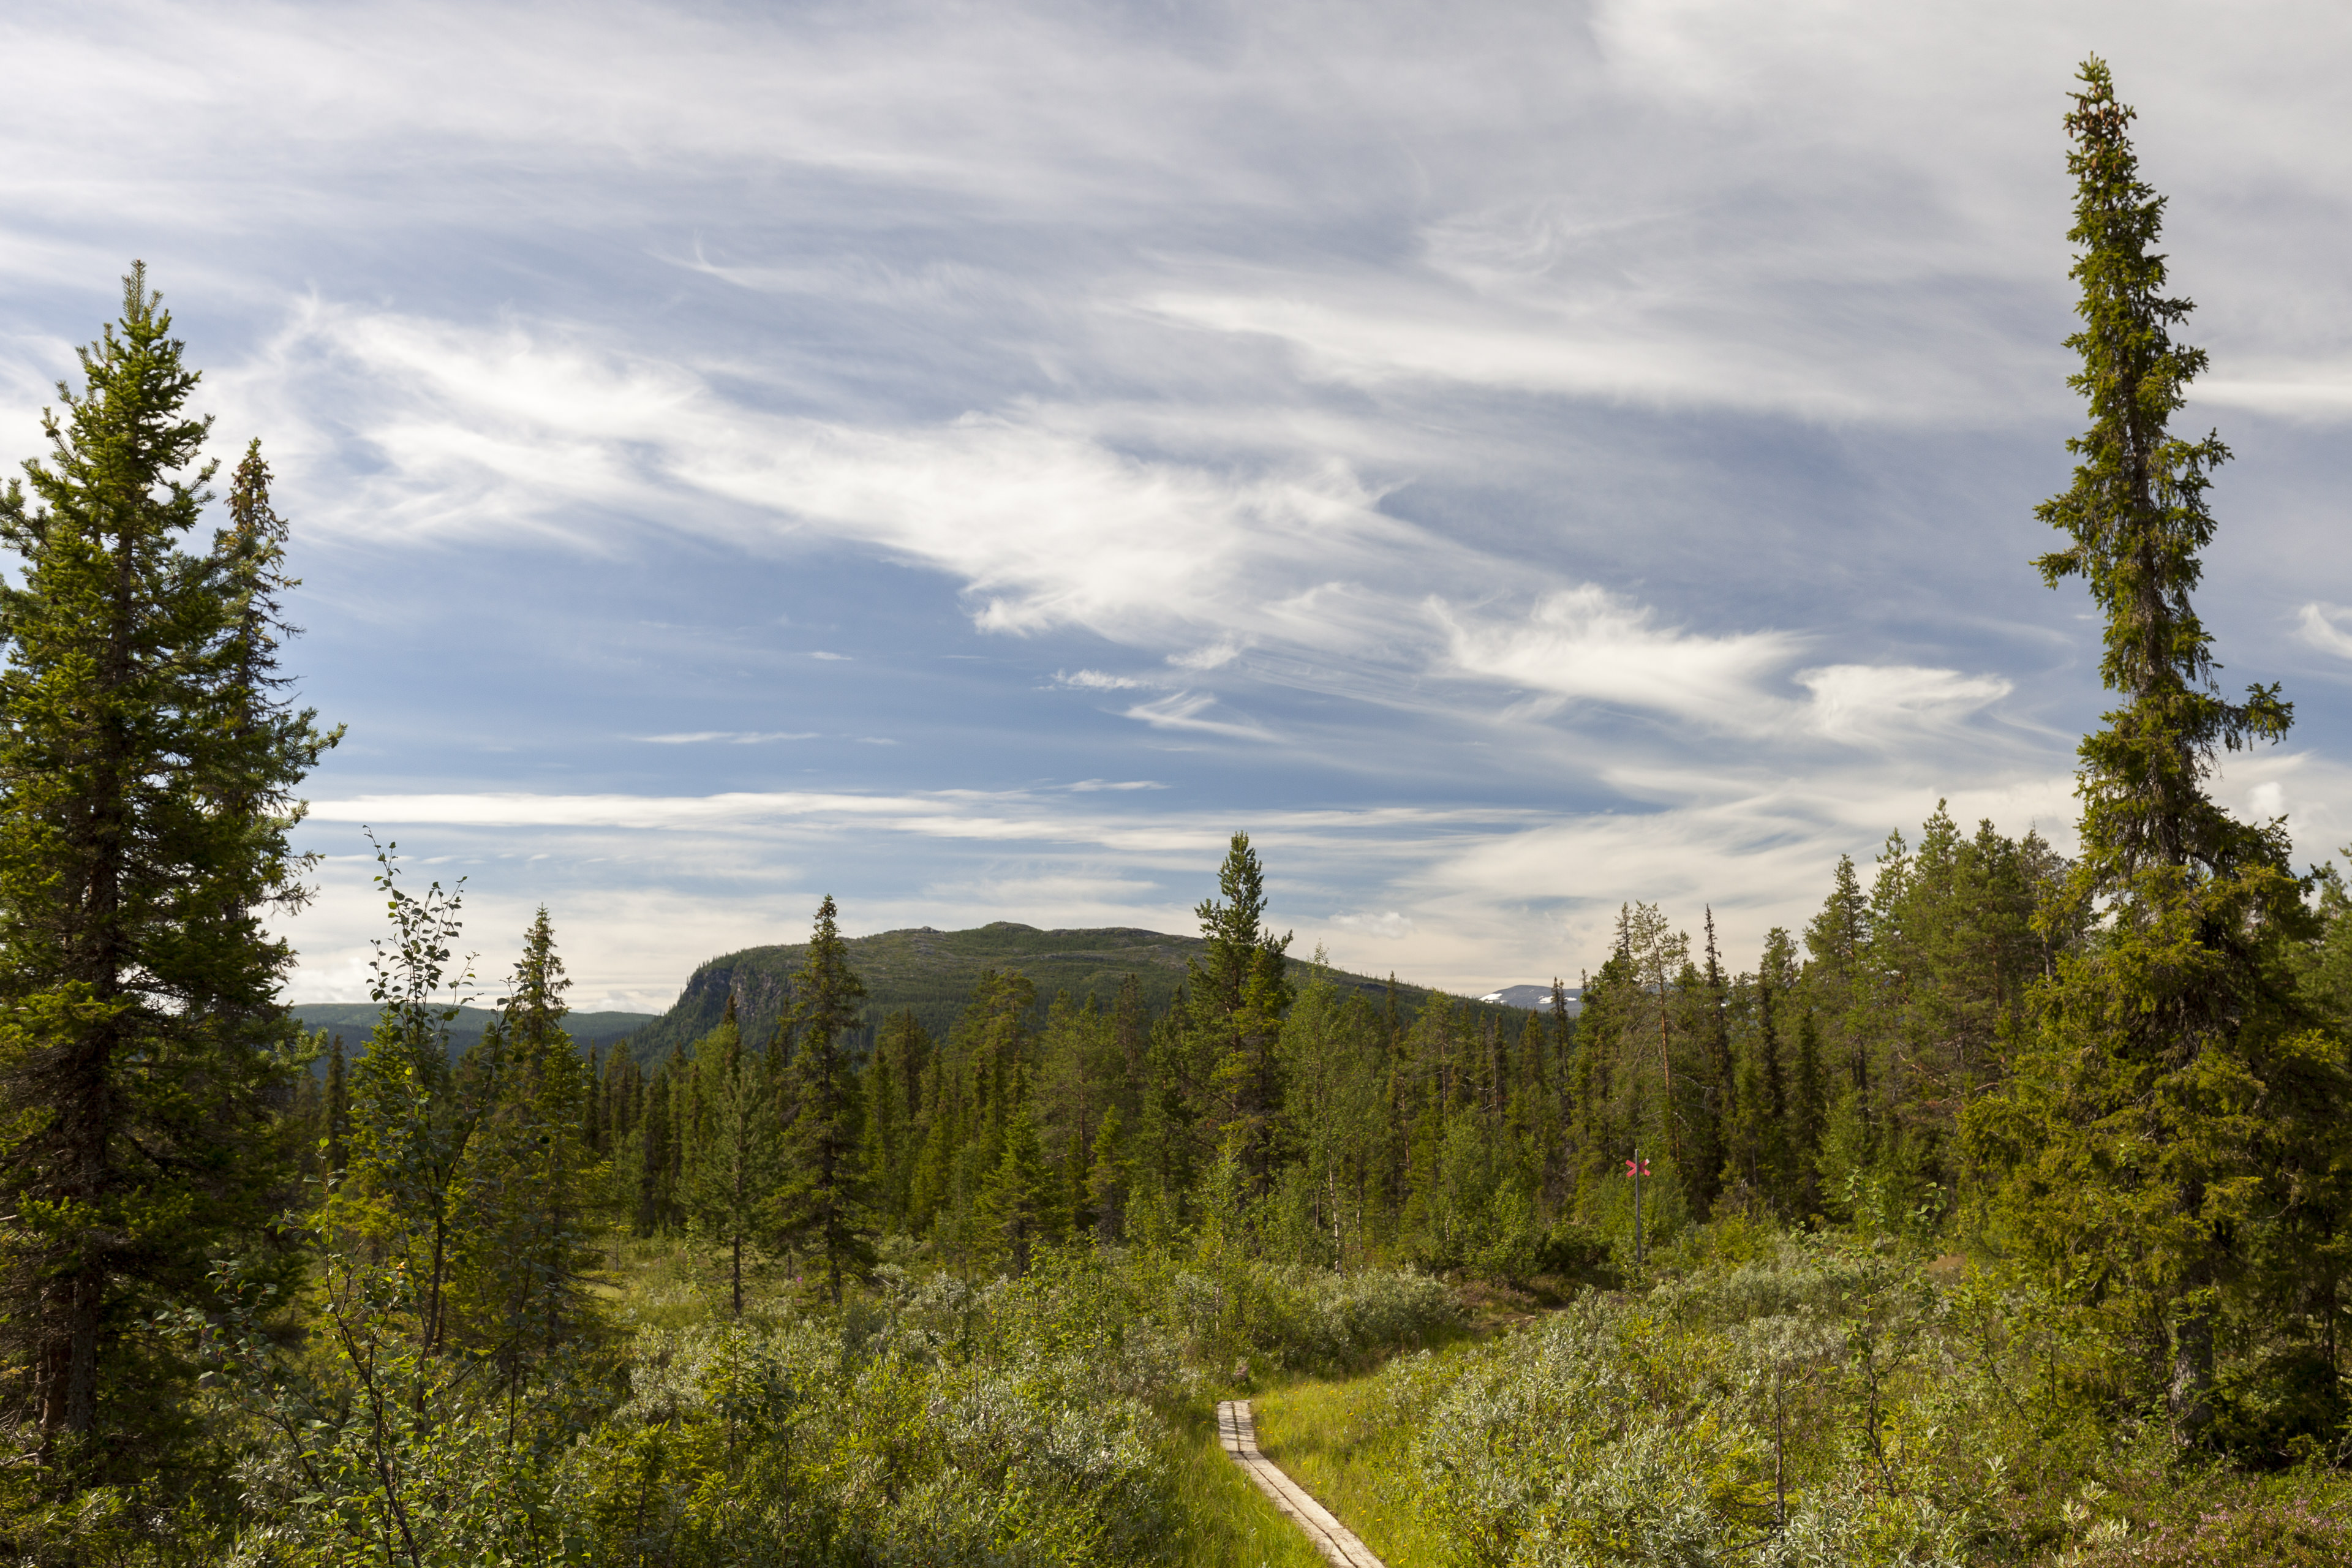 Durch den Wald nach Kvikkjokk, © Markus Proske — Canon EOS 5D Mark II, EF16-35mm f/4L IS USM, 35mm, 1/200s, Blende 8, ISO 200